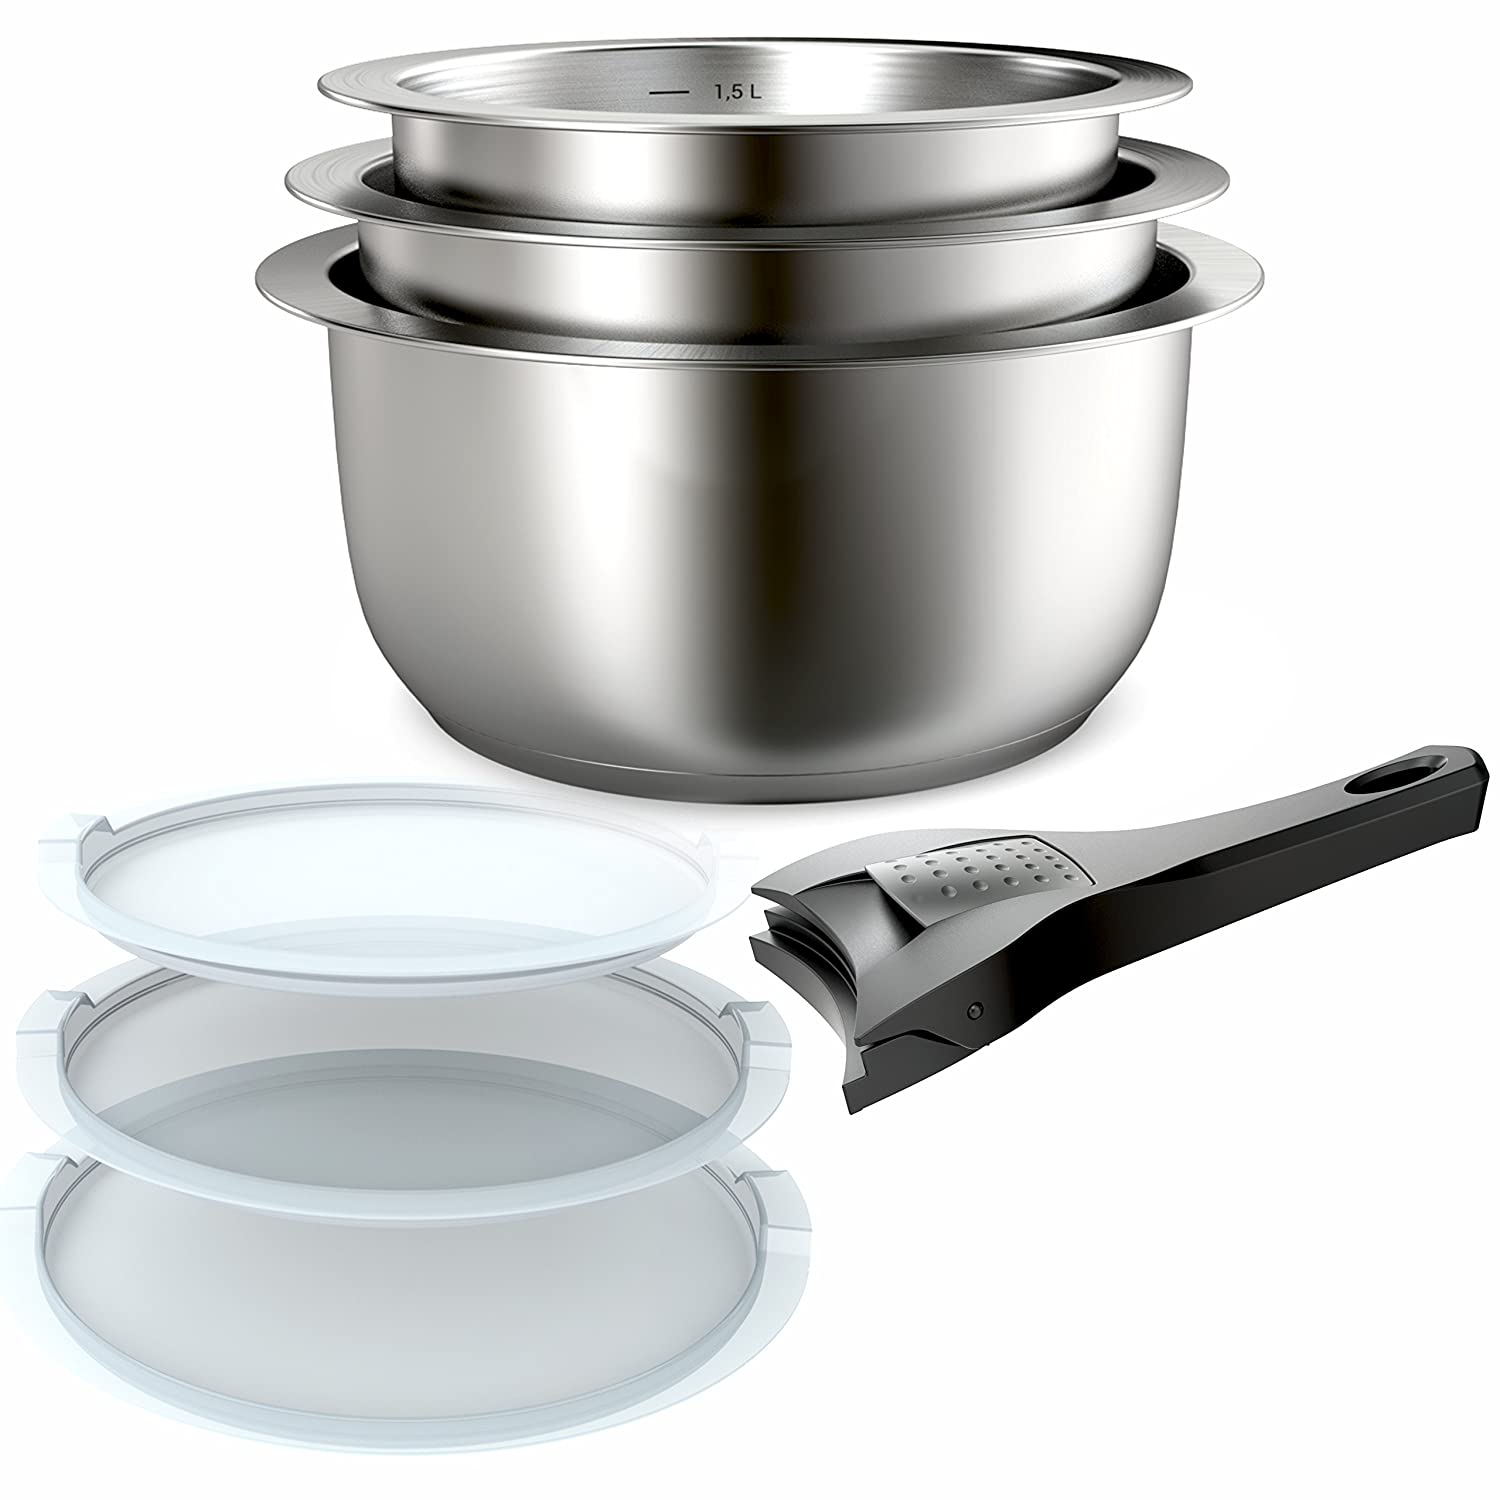 Backen 401199 7 Piece Cookware Set – 18/10 Stainless Steel – Suitable for all Heat Sources including Induction